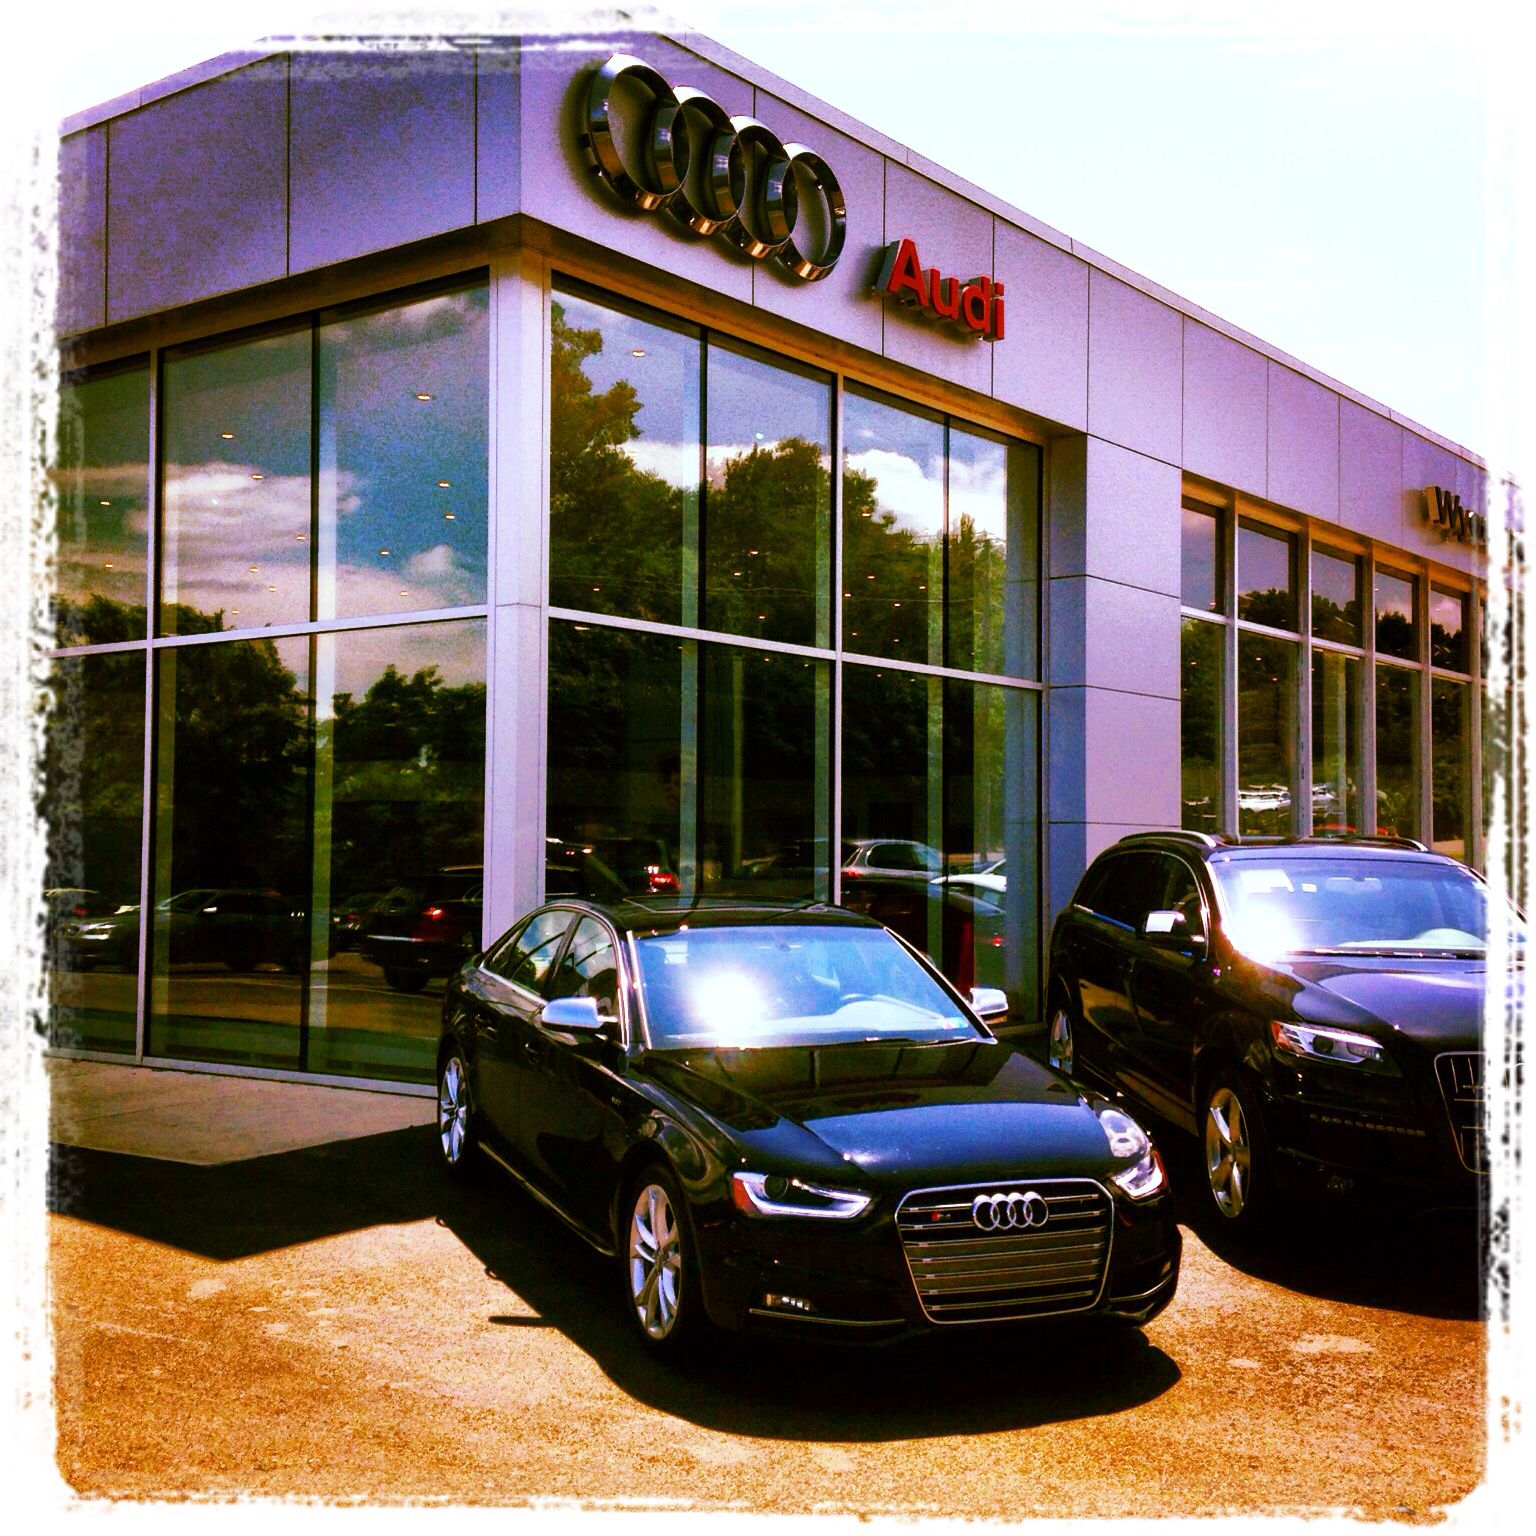 Audi at Wyoming valley motors in larksville, pa | The AFS Collection